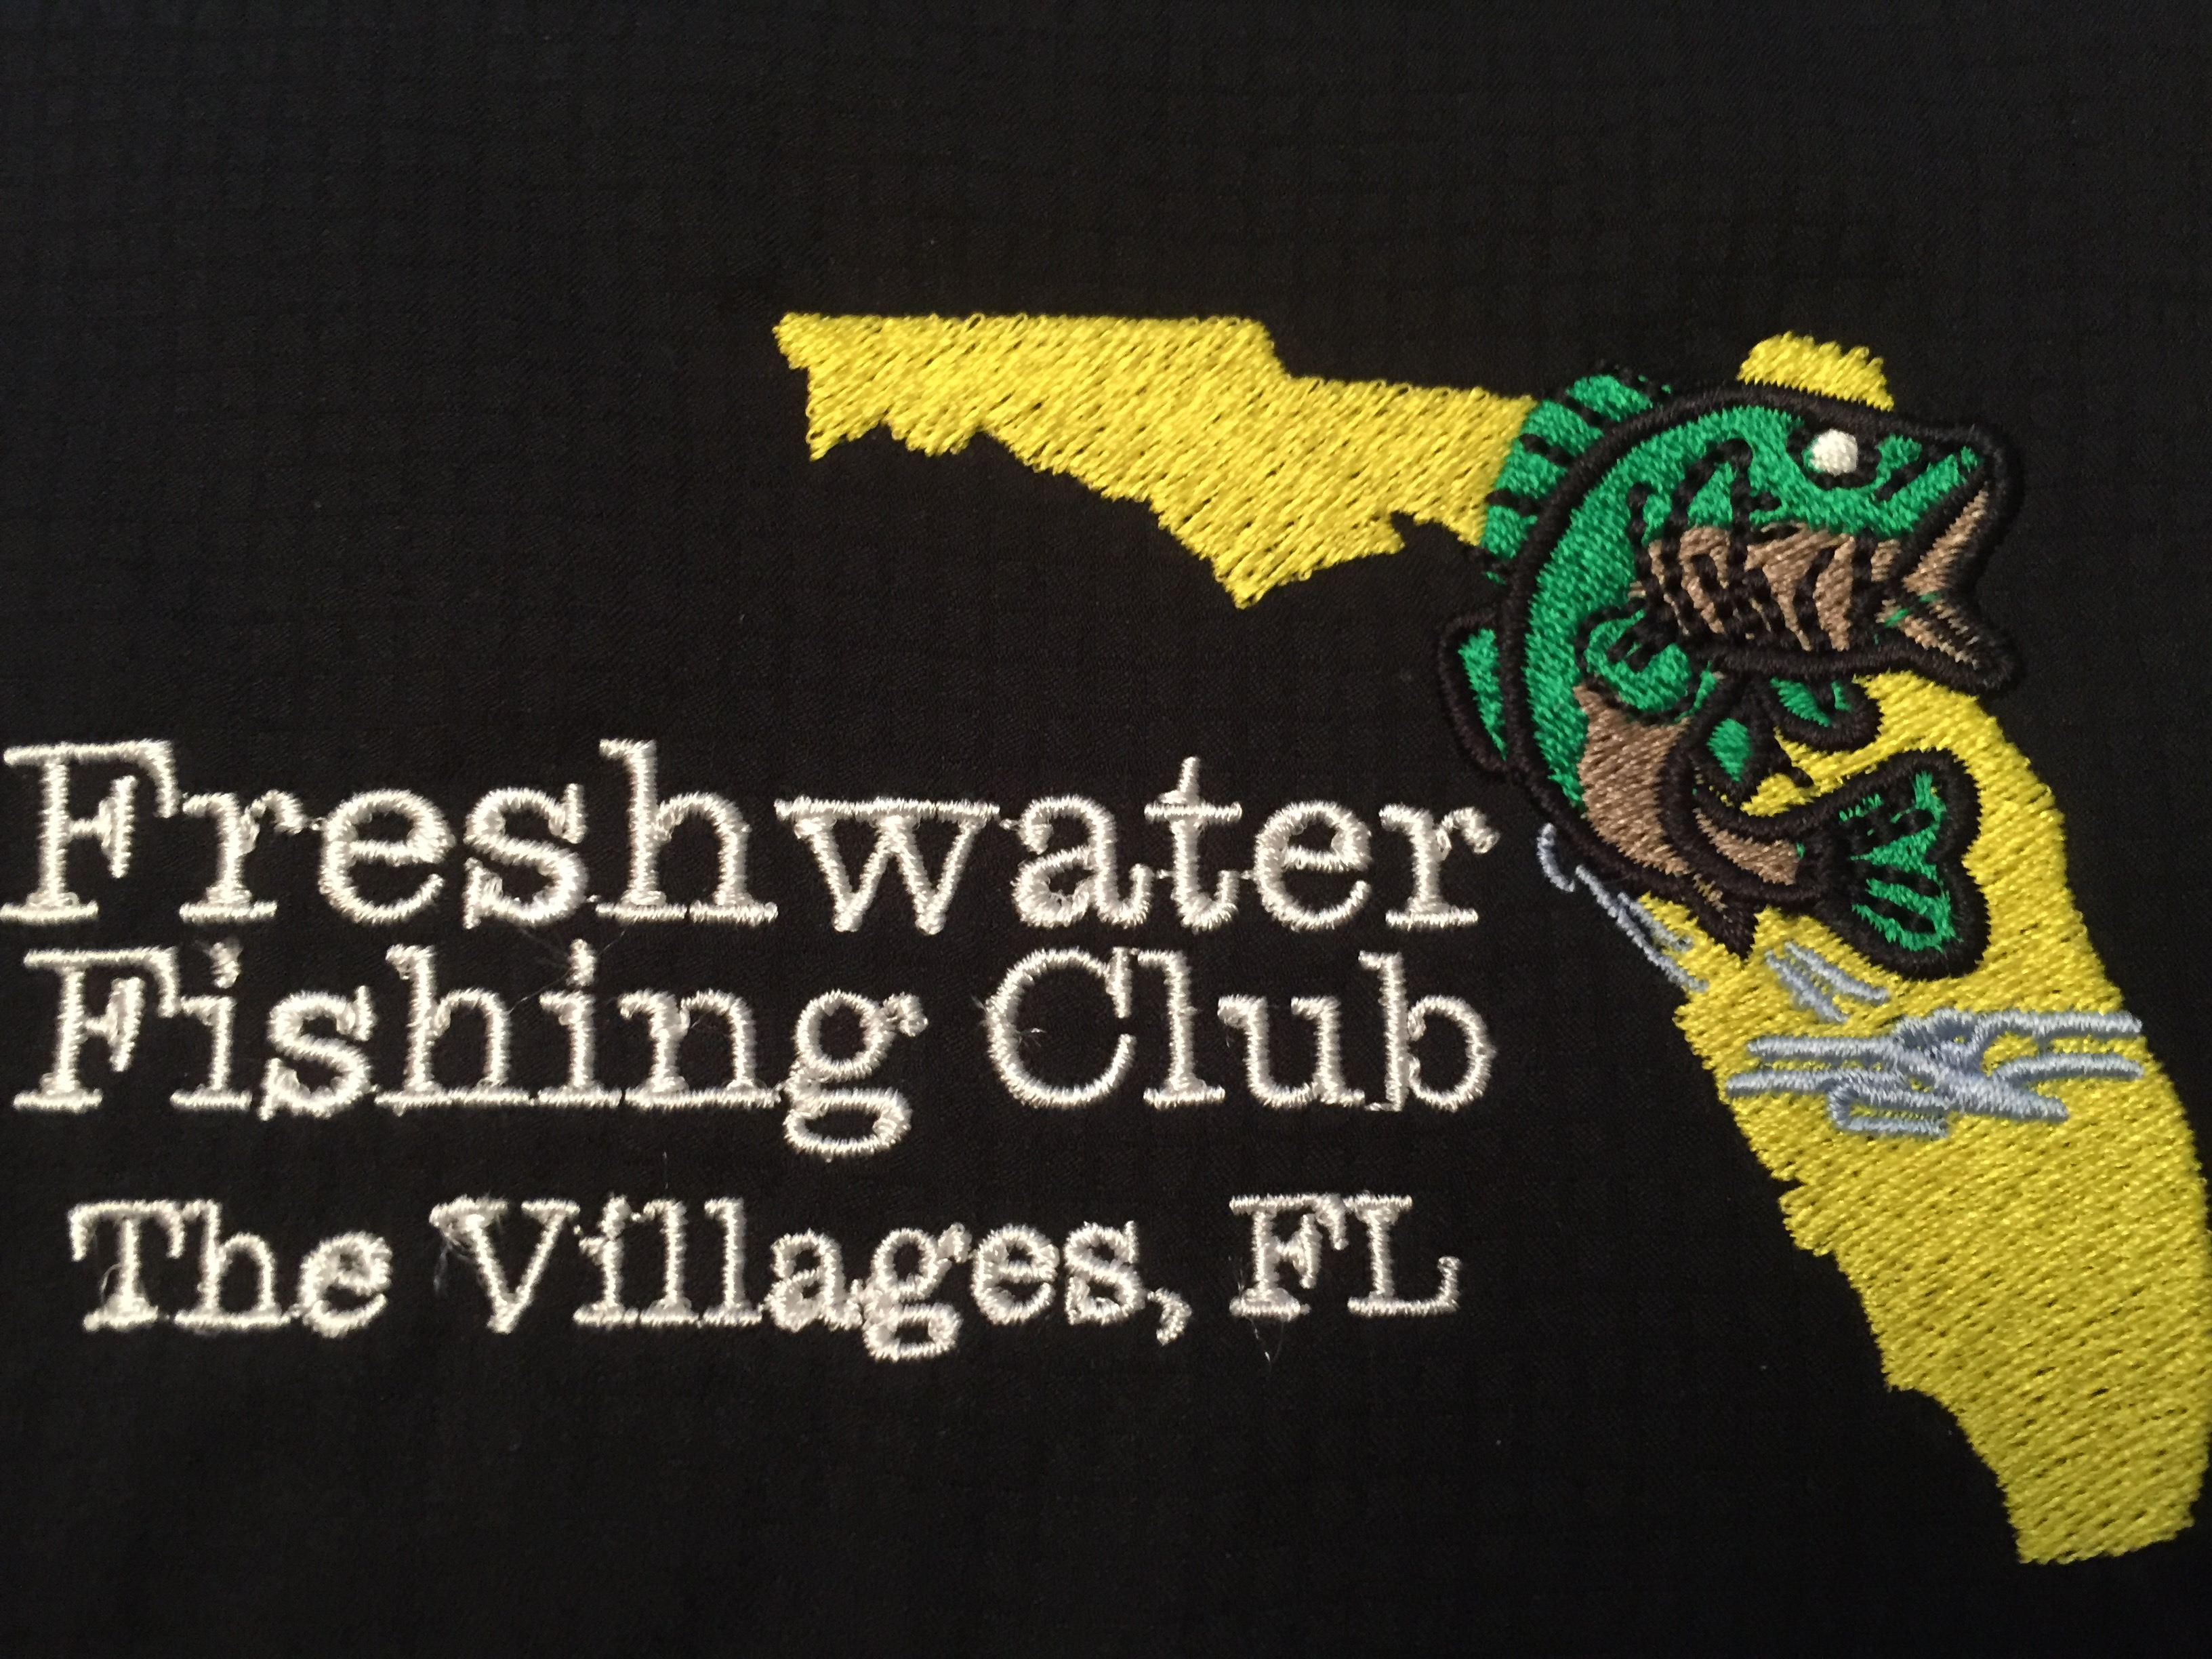 Freshwater fish near me - Ffc Logo Custom Apparel 3451 Wedgewood Ln Southern Plaza Near Publix